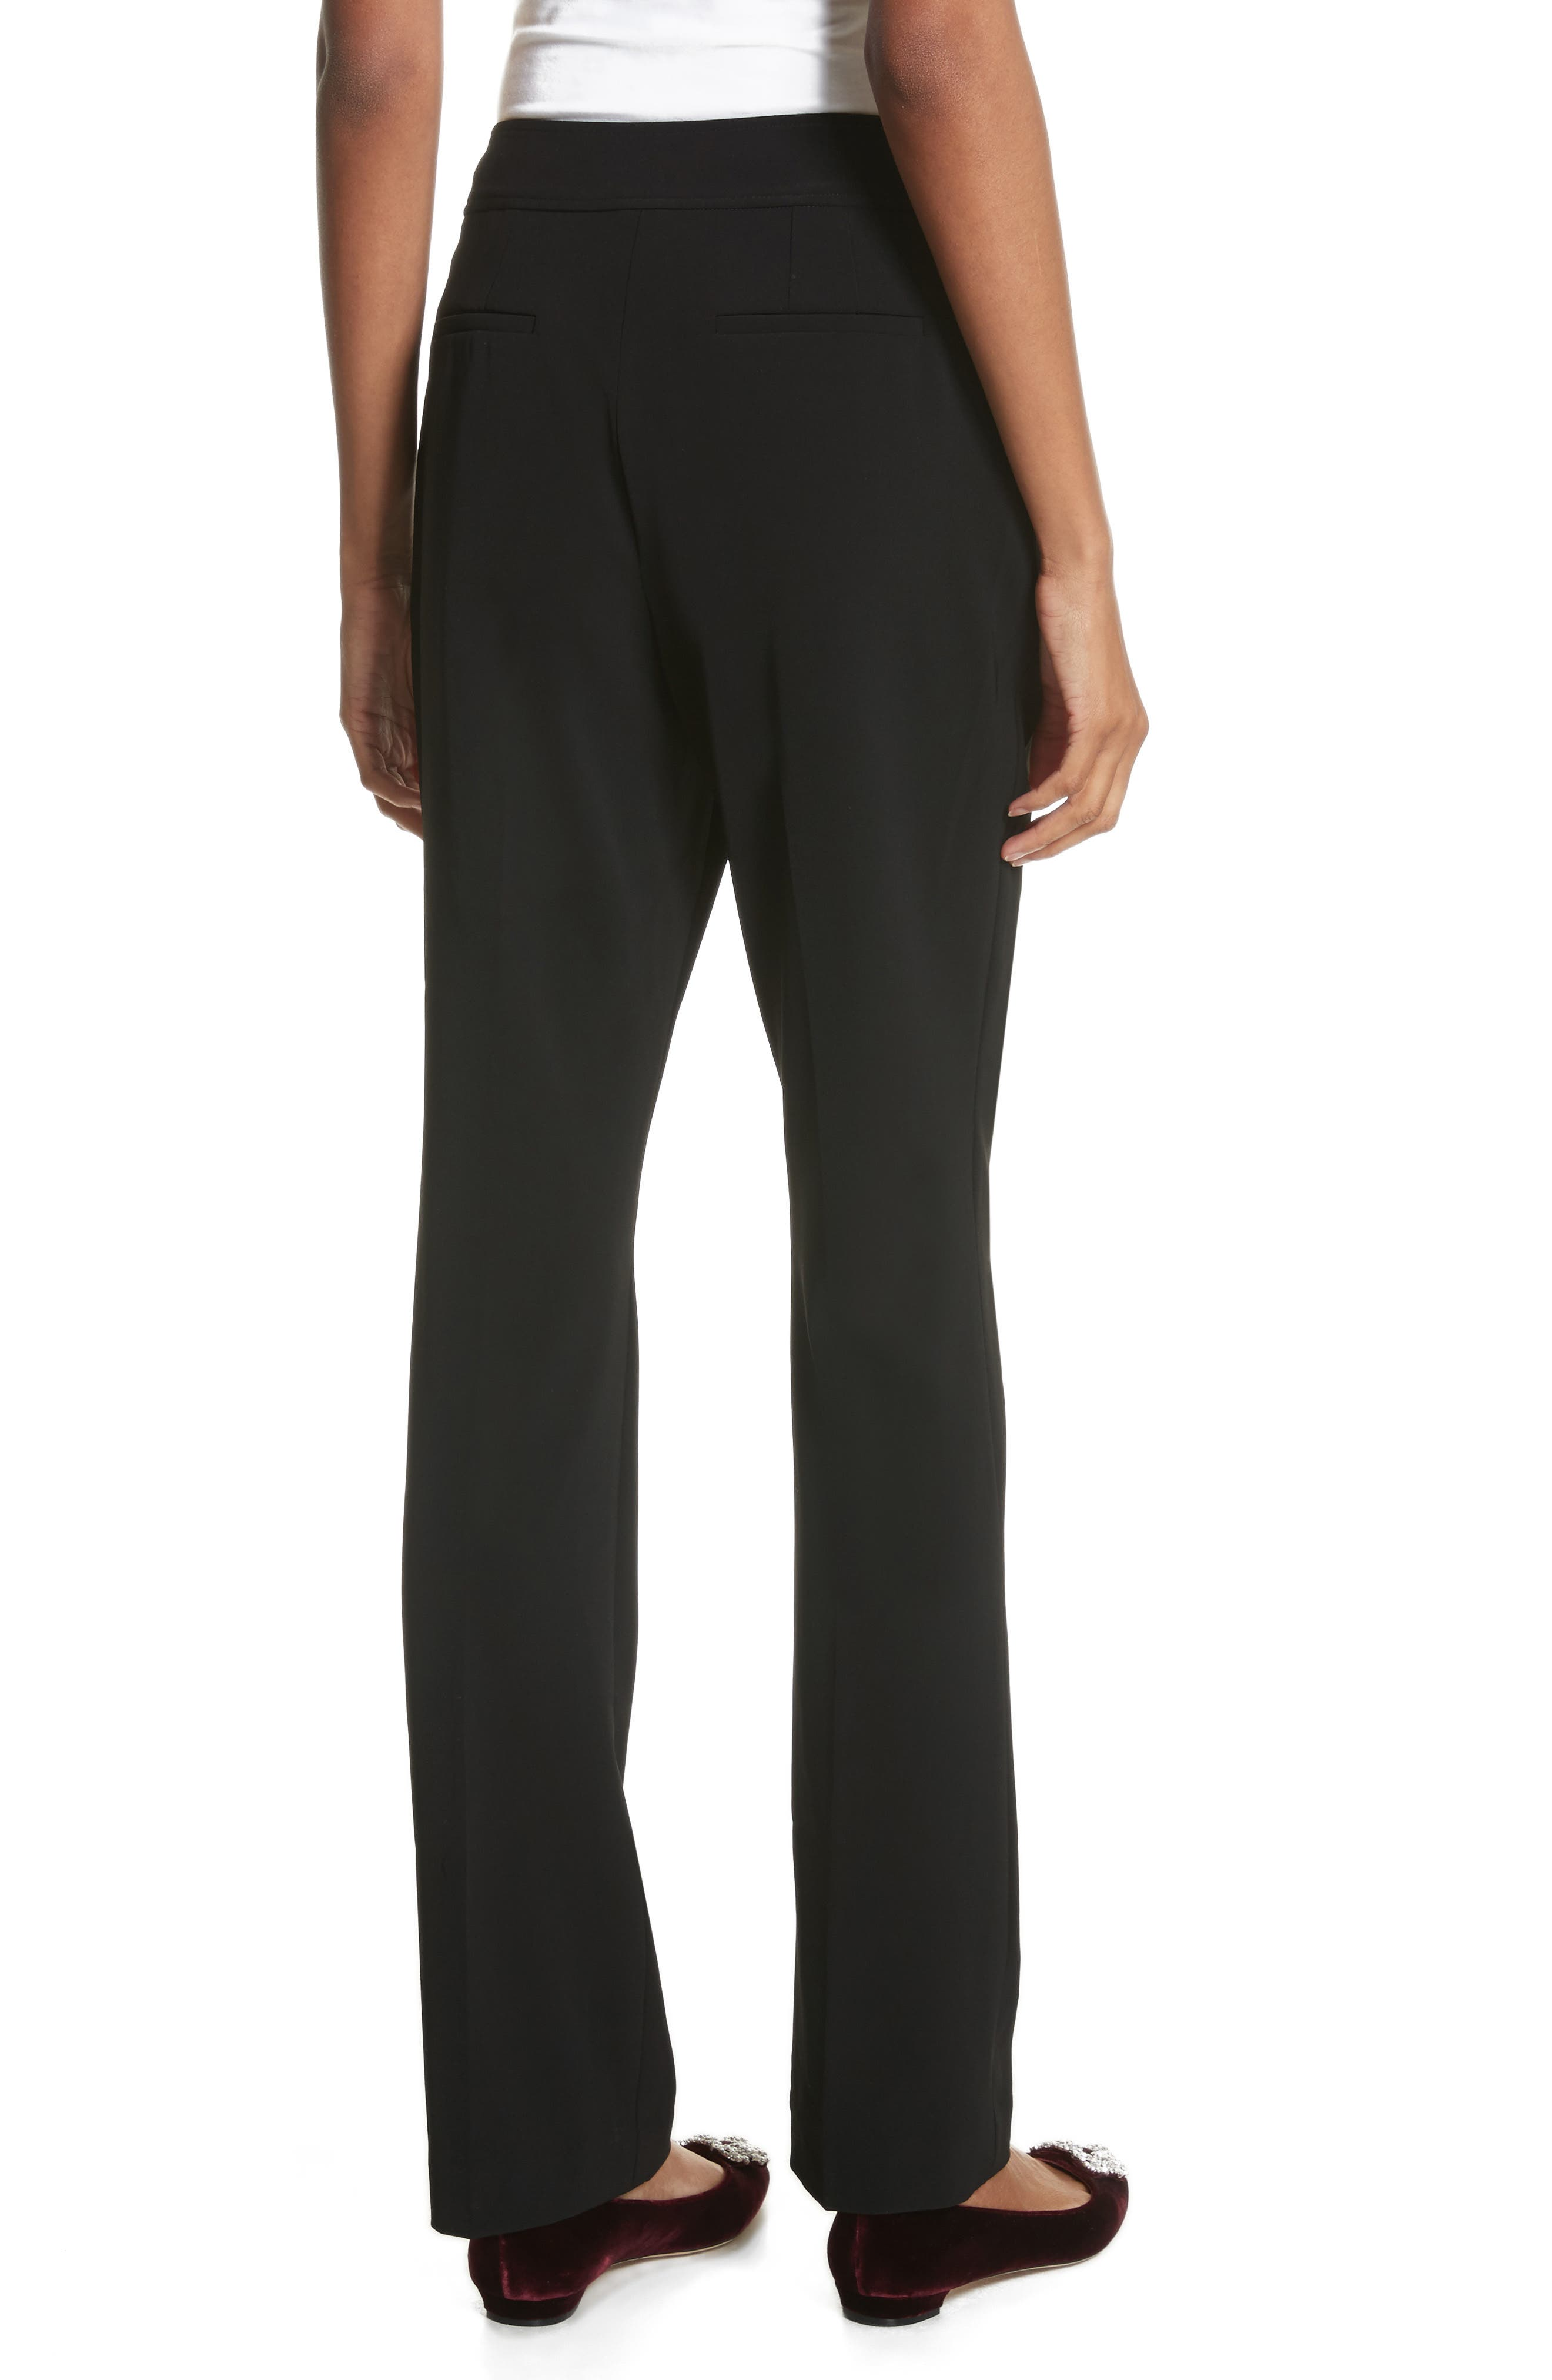 Yulit High Waist Trousers,                             Alternate thumbnail 2, color,                             Black